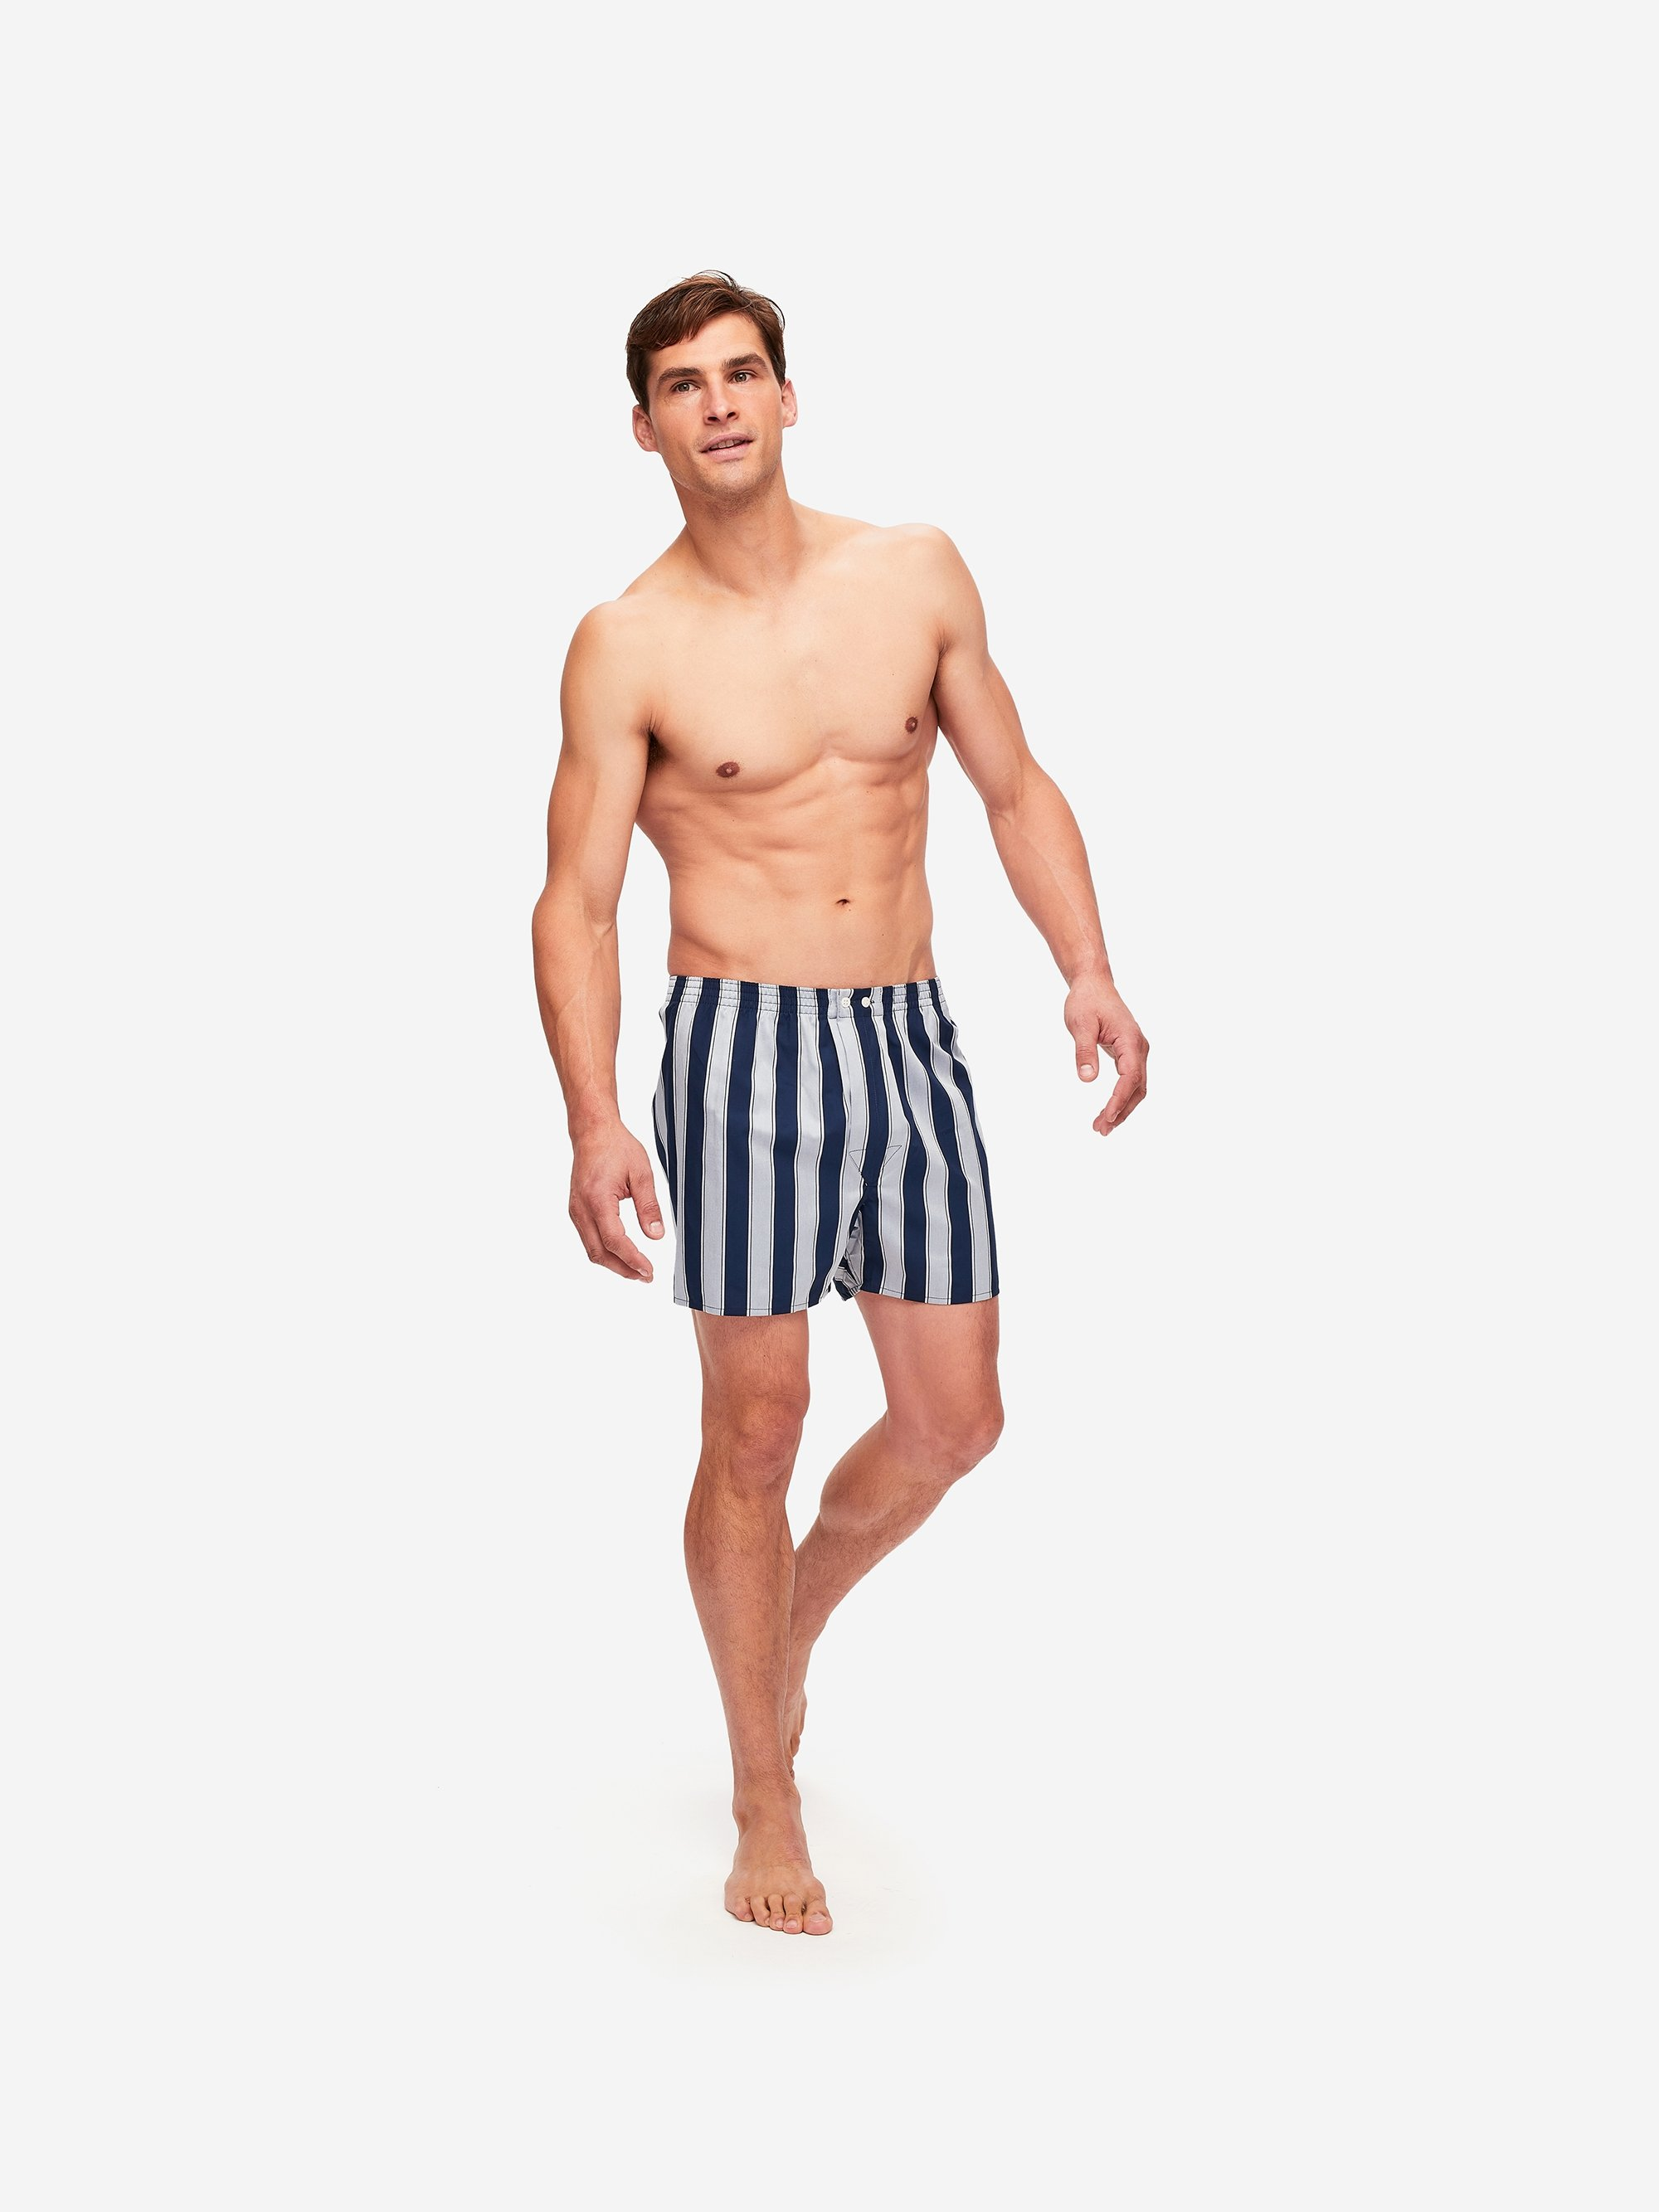 Men's Classic Fit Boxer Shorts Royal 216 Cotton Satin Stripe Navy